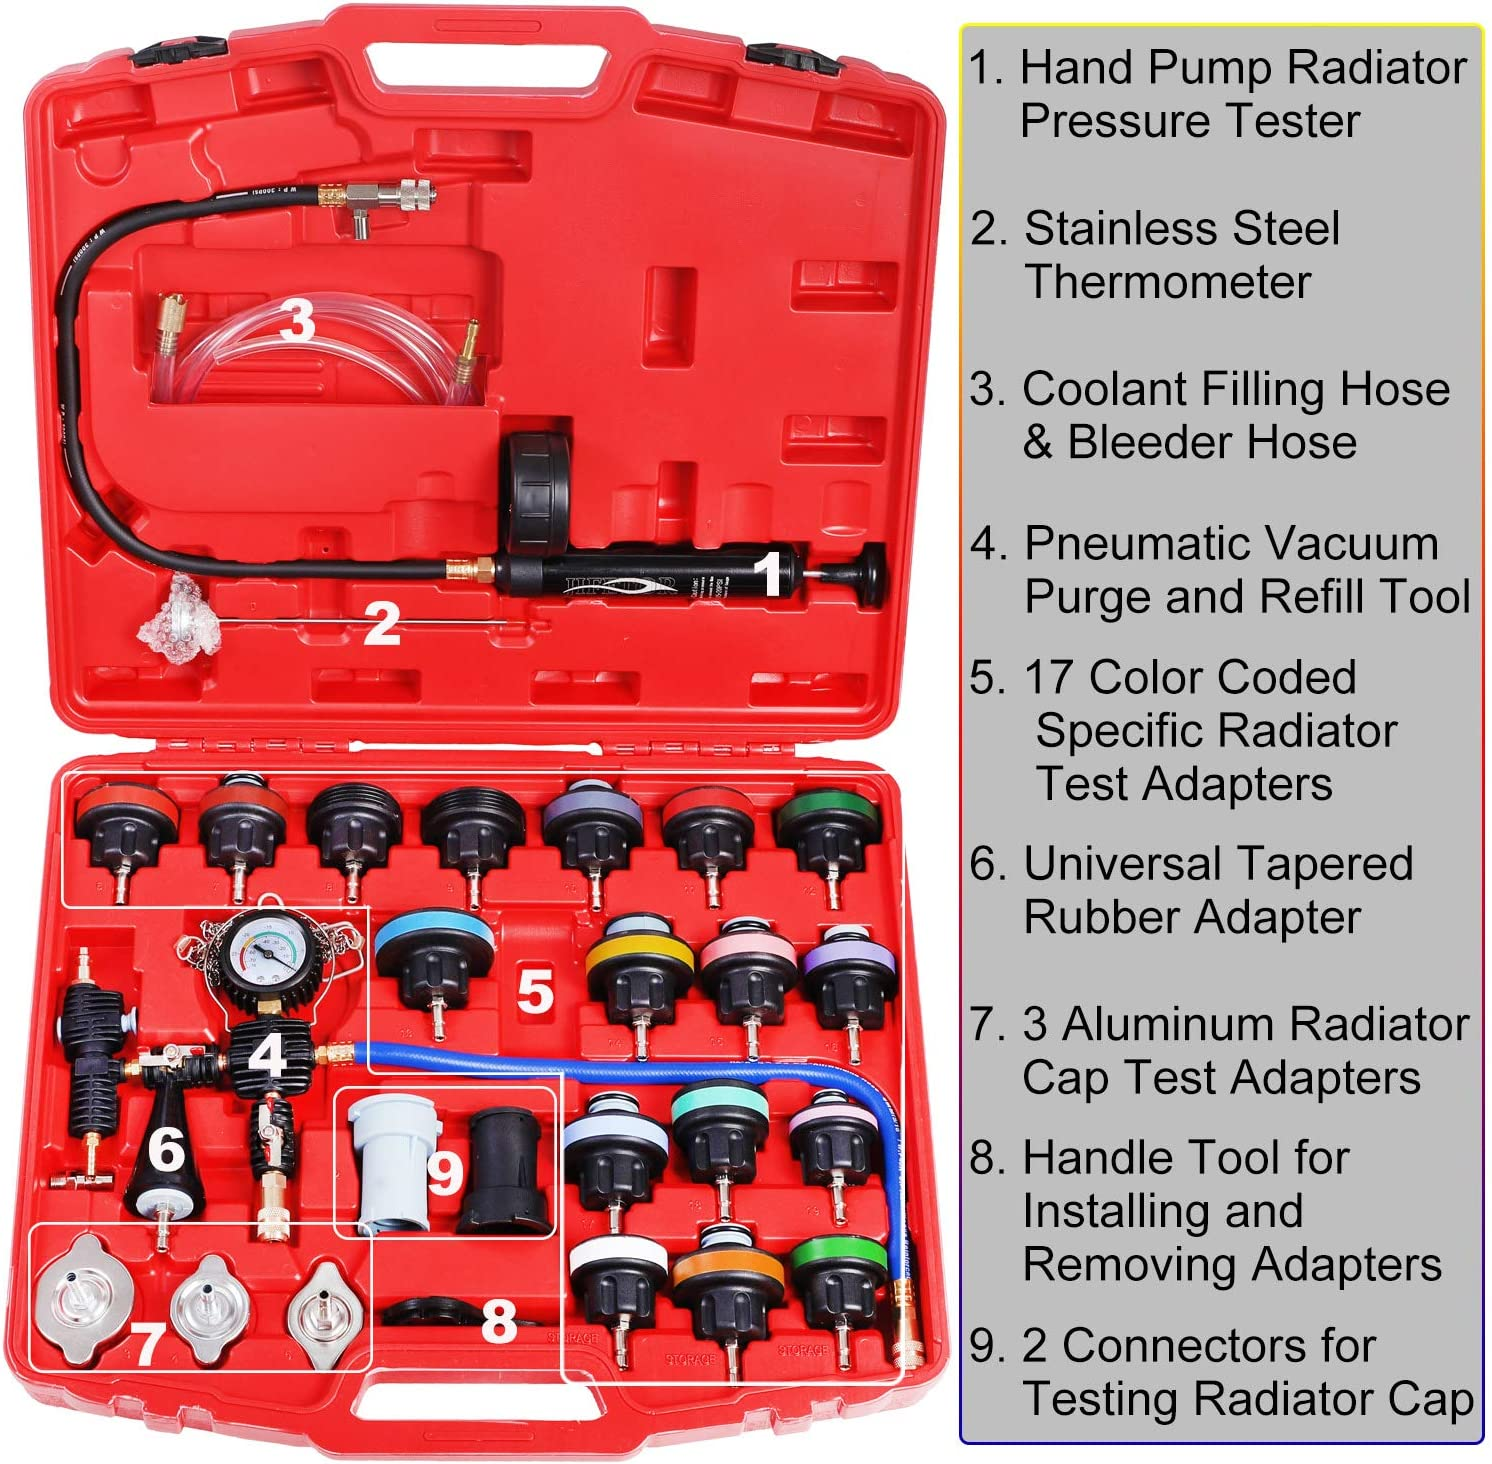 JIFETOR Radiator Pressure Leakage Tester and Vacuum Cooling System Purge Coolant Refill Tool Kit 28PCS Universal Automotive Water Tank Leak Test Detector and Pneumatic Vacuum Coolant Change Set